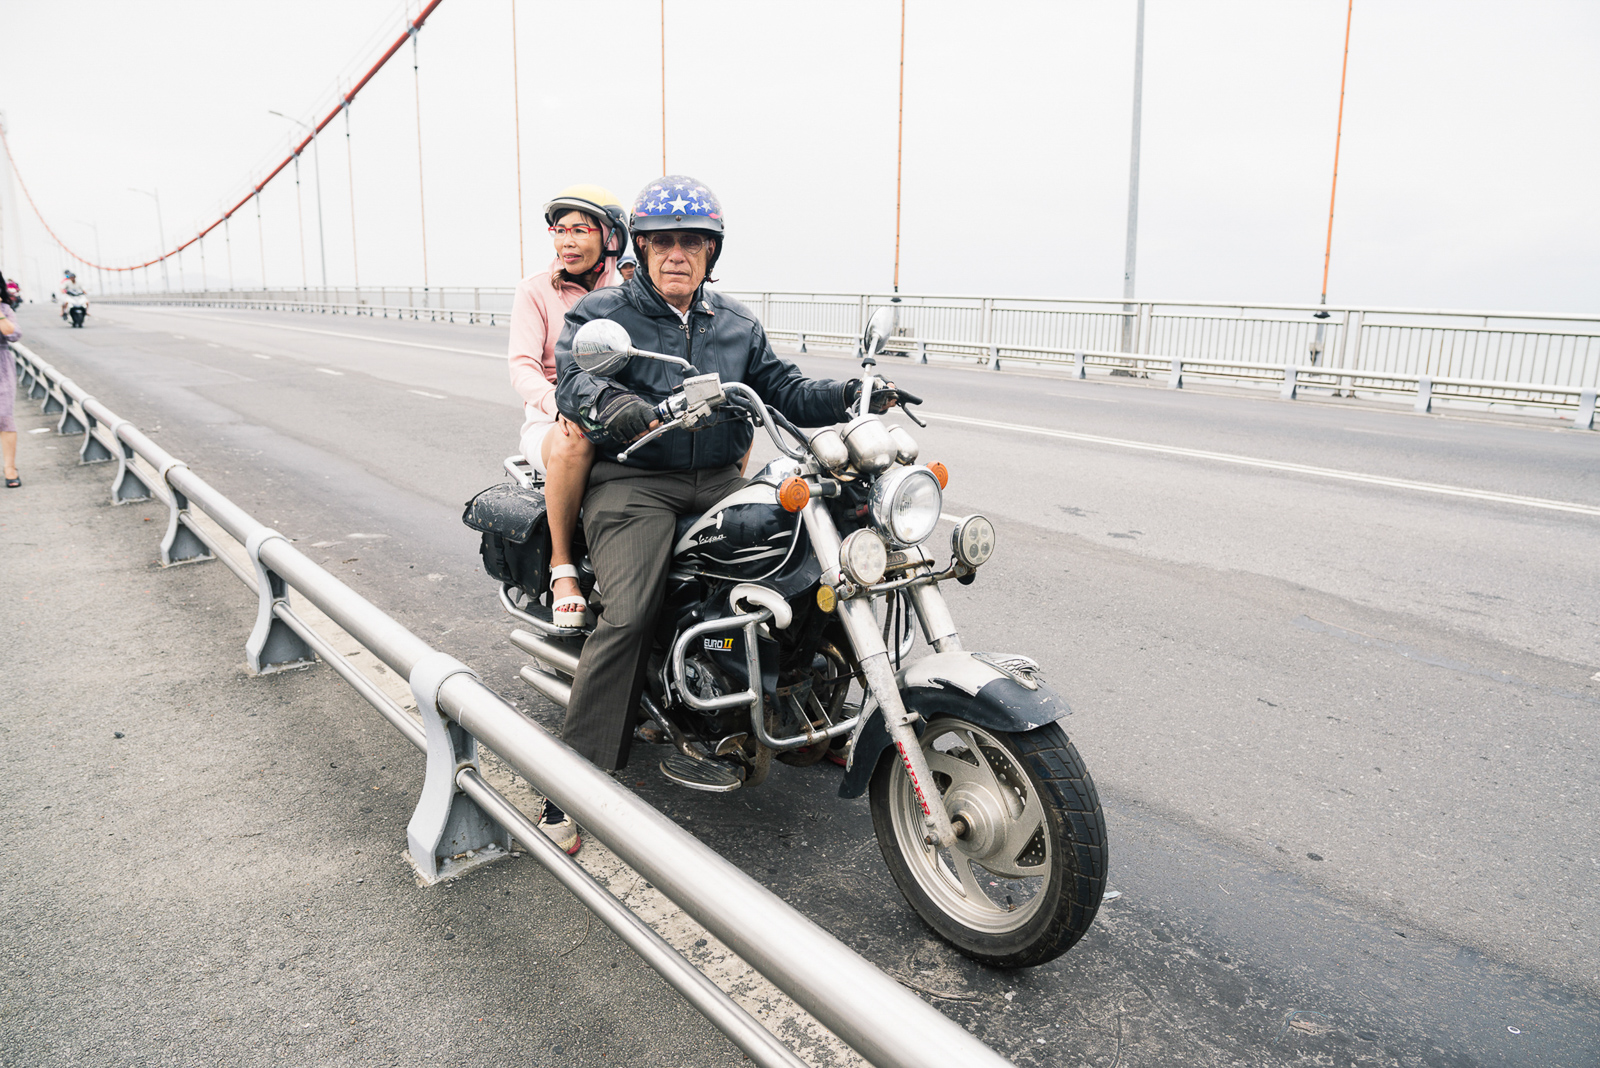 Seven years since, David and Ushi helped organize motorcycle trips through Vietnam on behalf of the organization Veterans for Peace. After each tour, the members donate to war-relief projects of their choice. On the yearly tour, David states he witnessed grown-up anti-war and pro-war people coming together to cry. His own motorbike is a Chinese replica of a Harley Davidson.